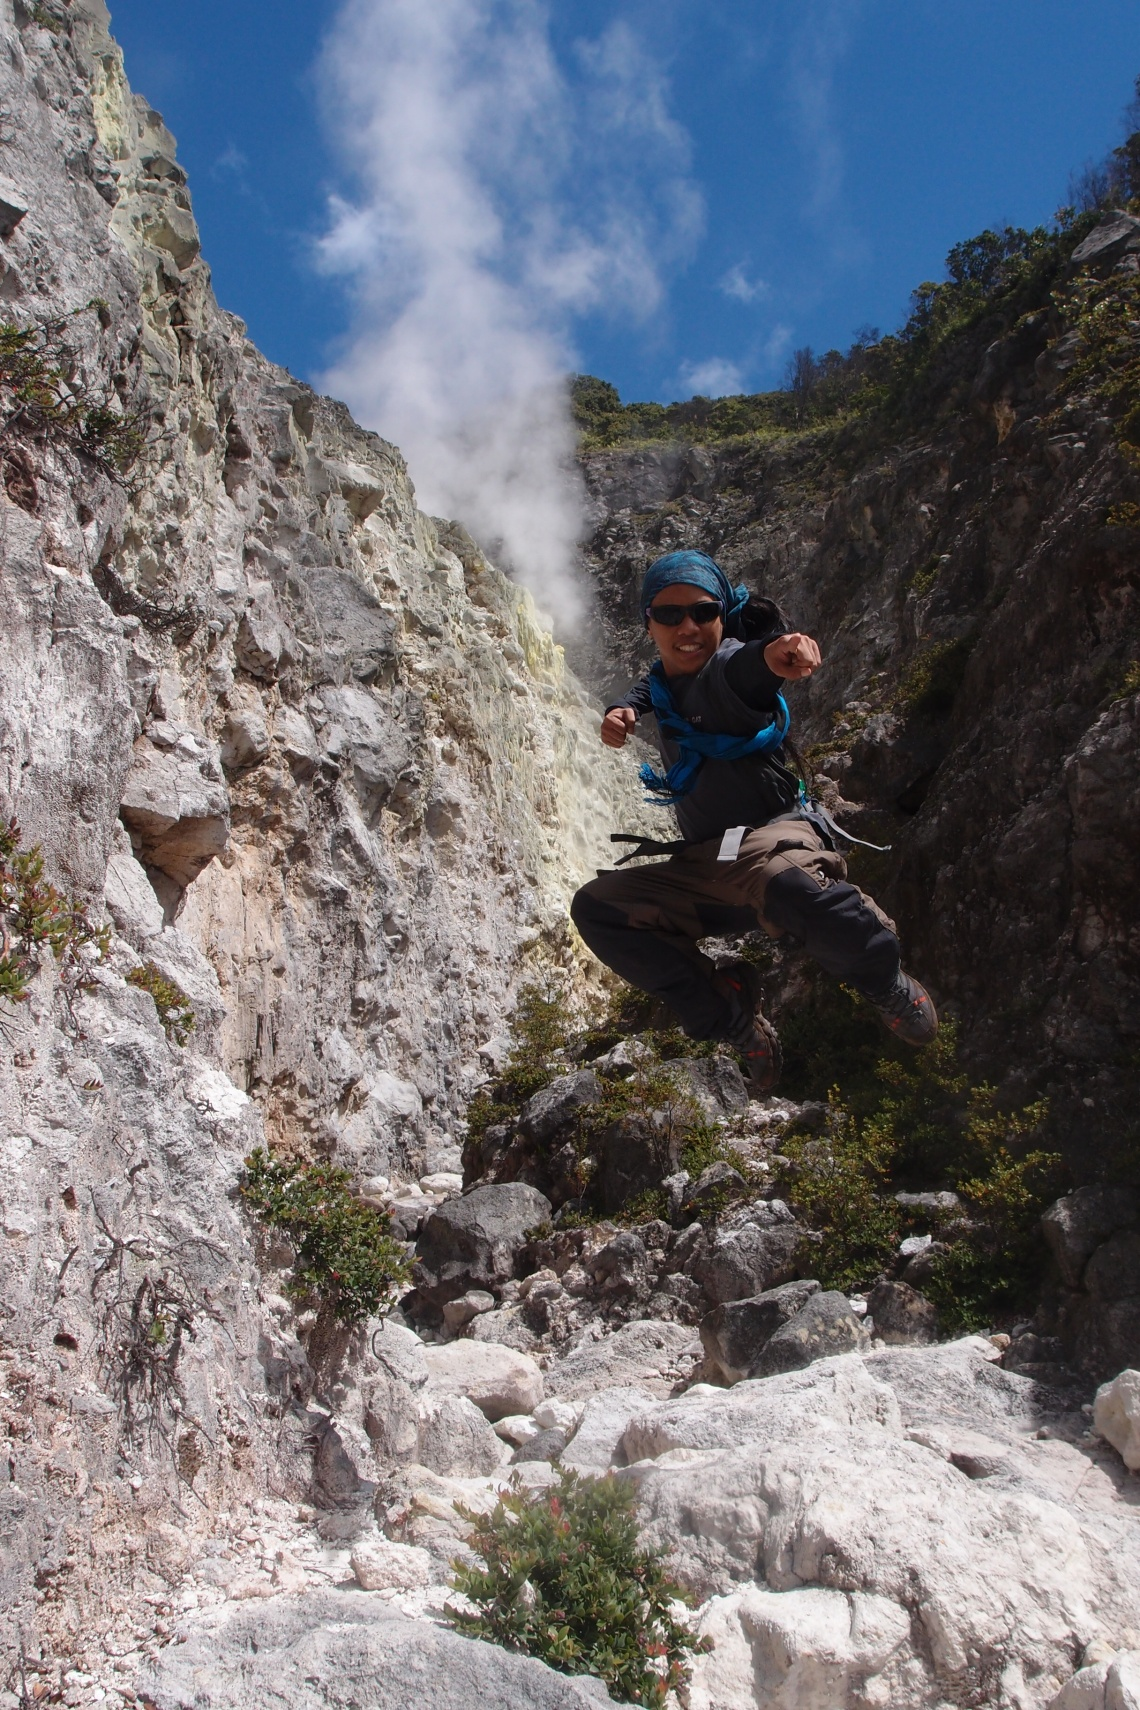 Boyfie's Signature Jump on The Boulder's entrance! See the smoke on the background?!